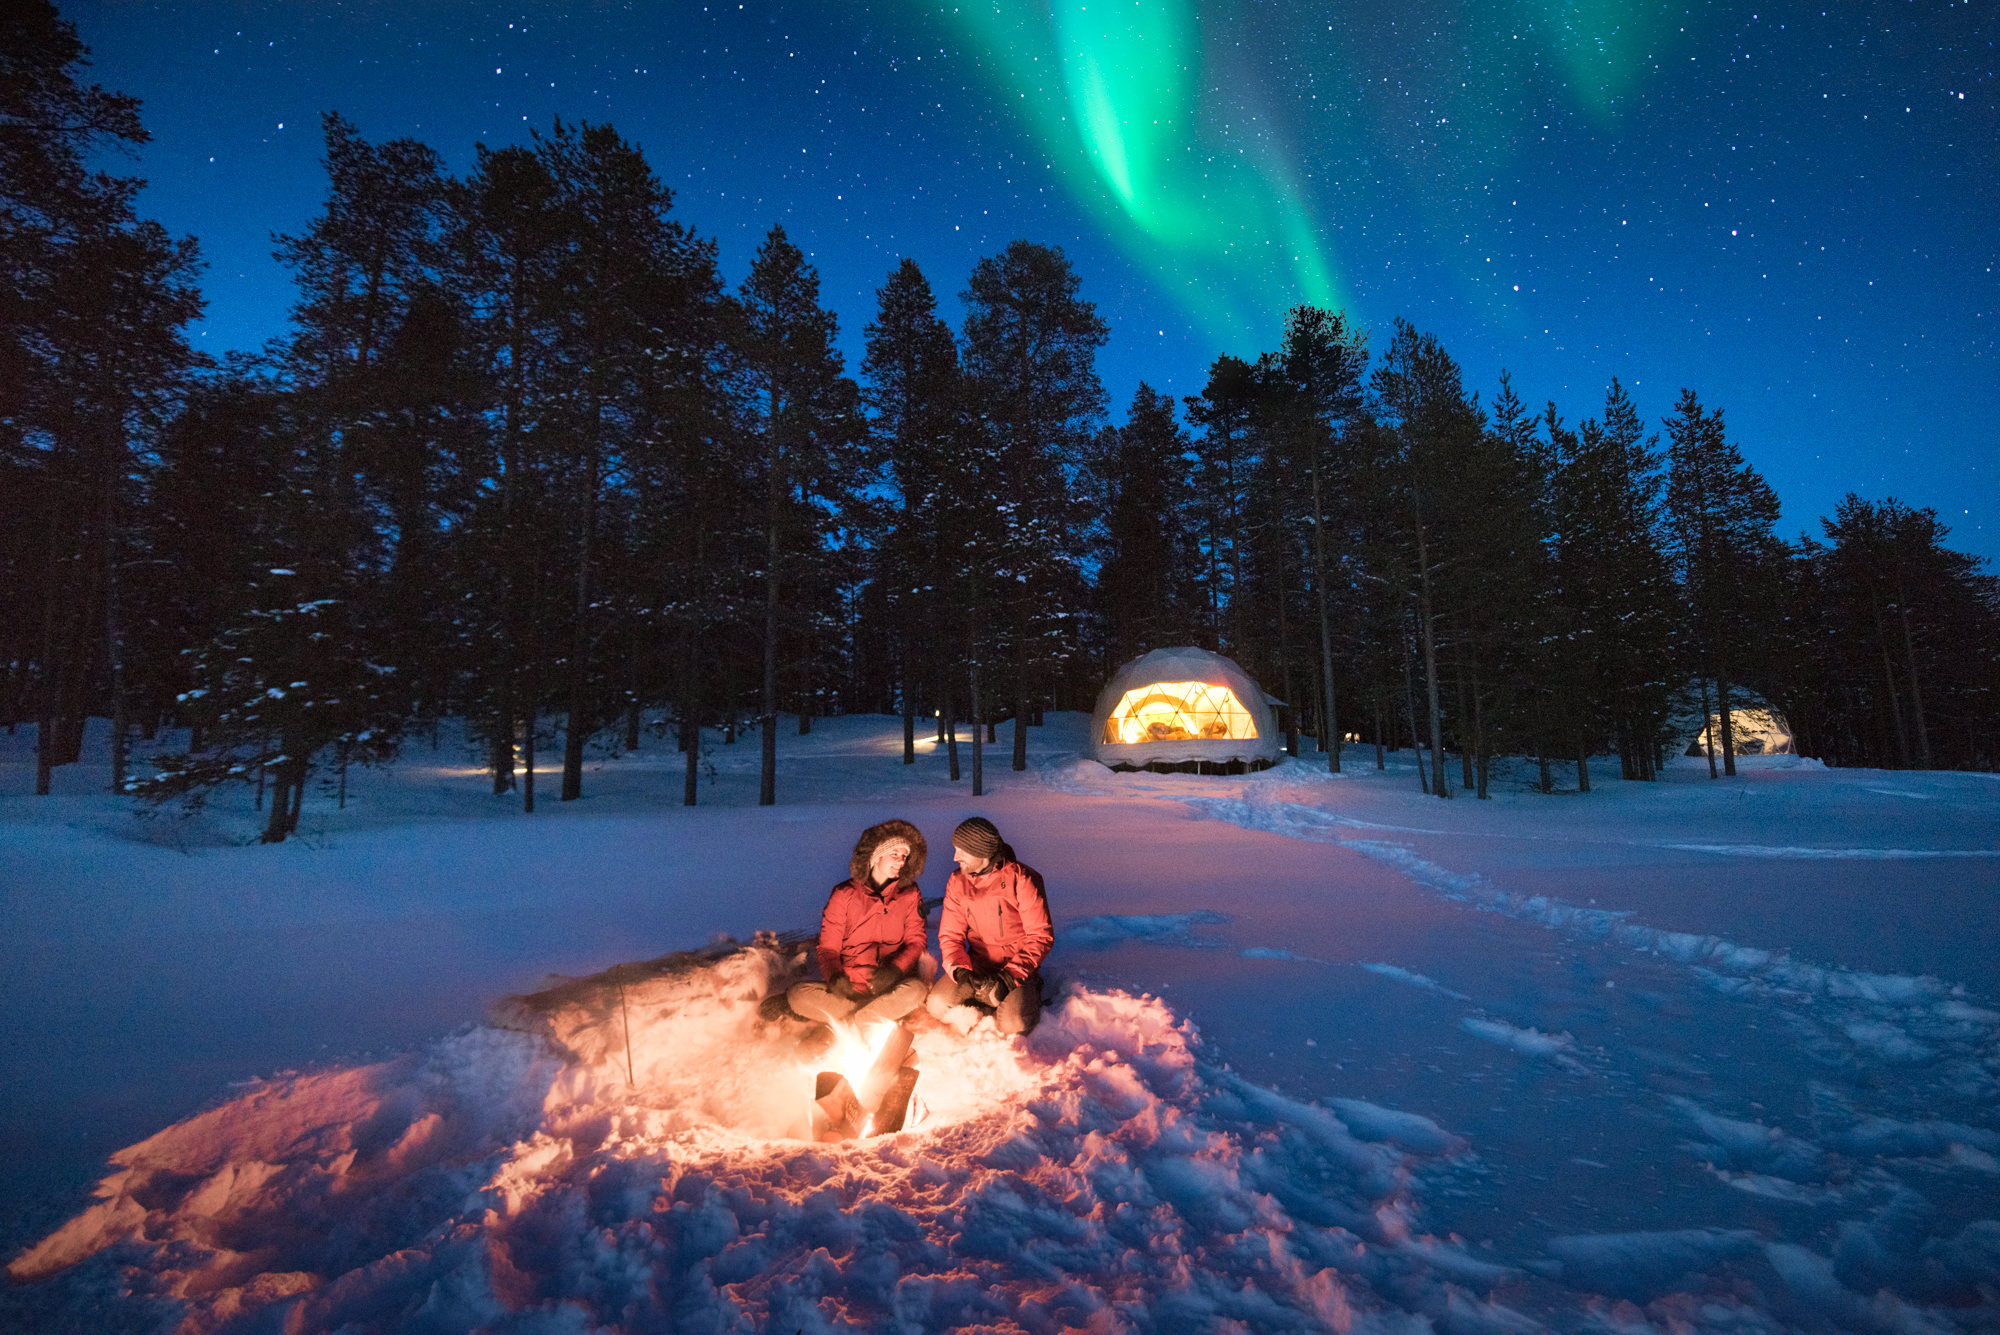 Two people sit in front of a campfire with the aurora overhead